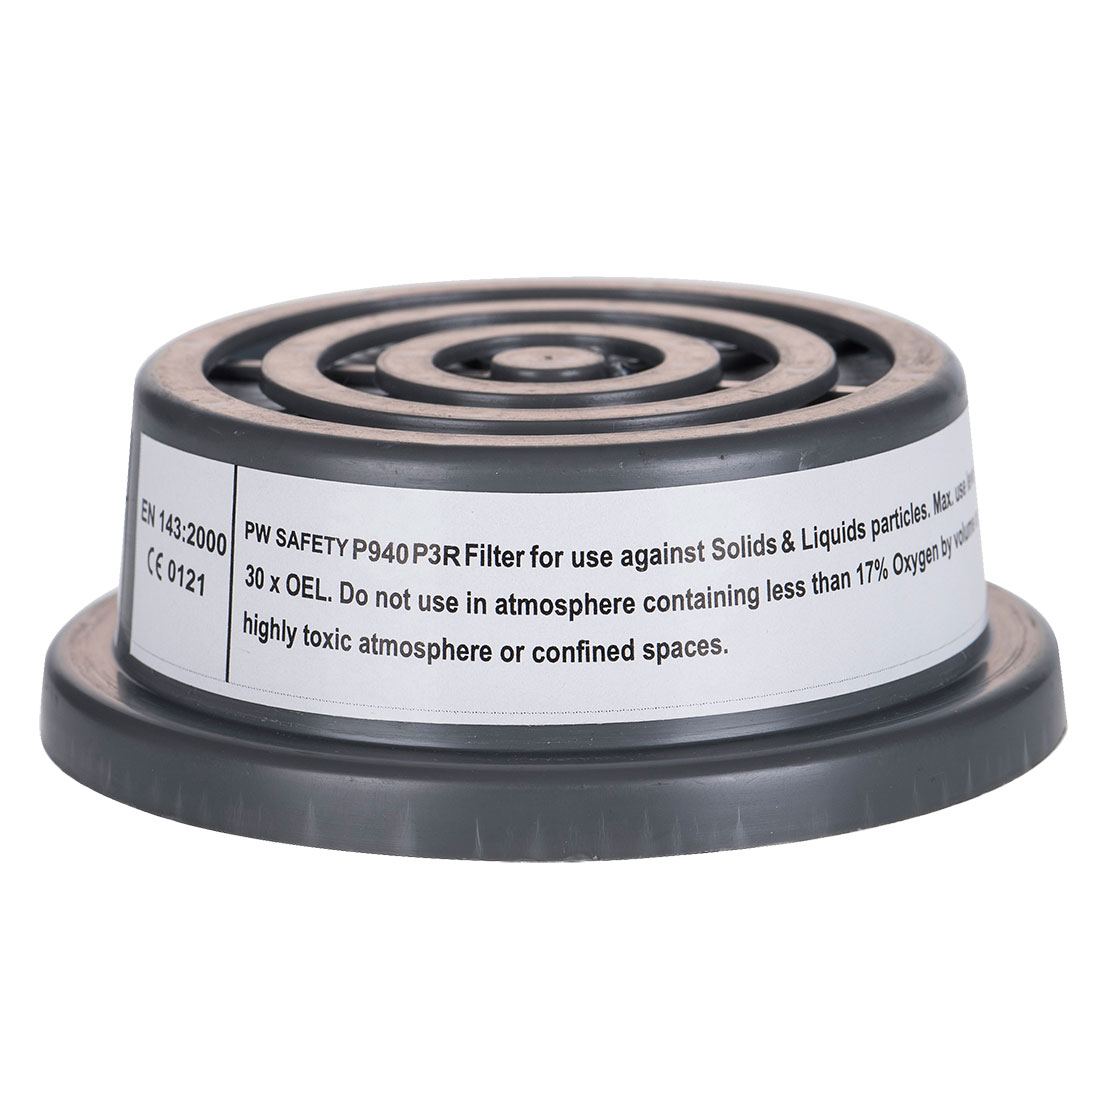 Portwest P3 Particle Filter Special Thread Connection - P940